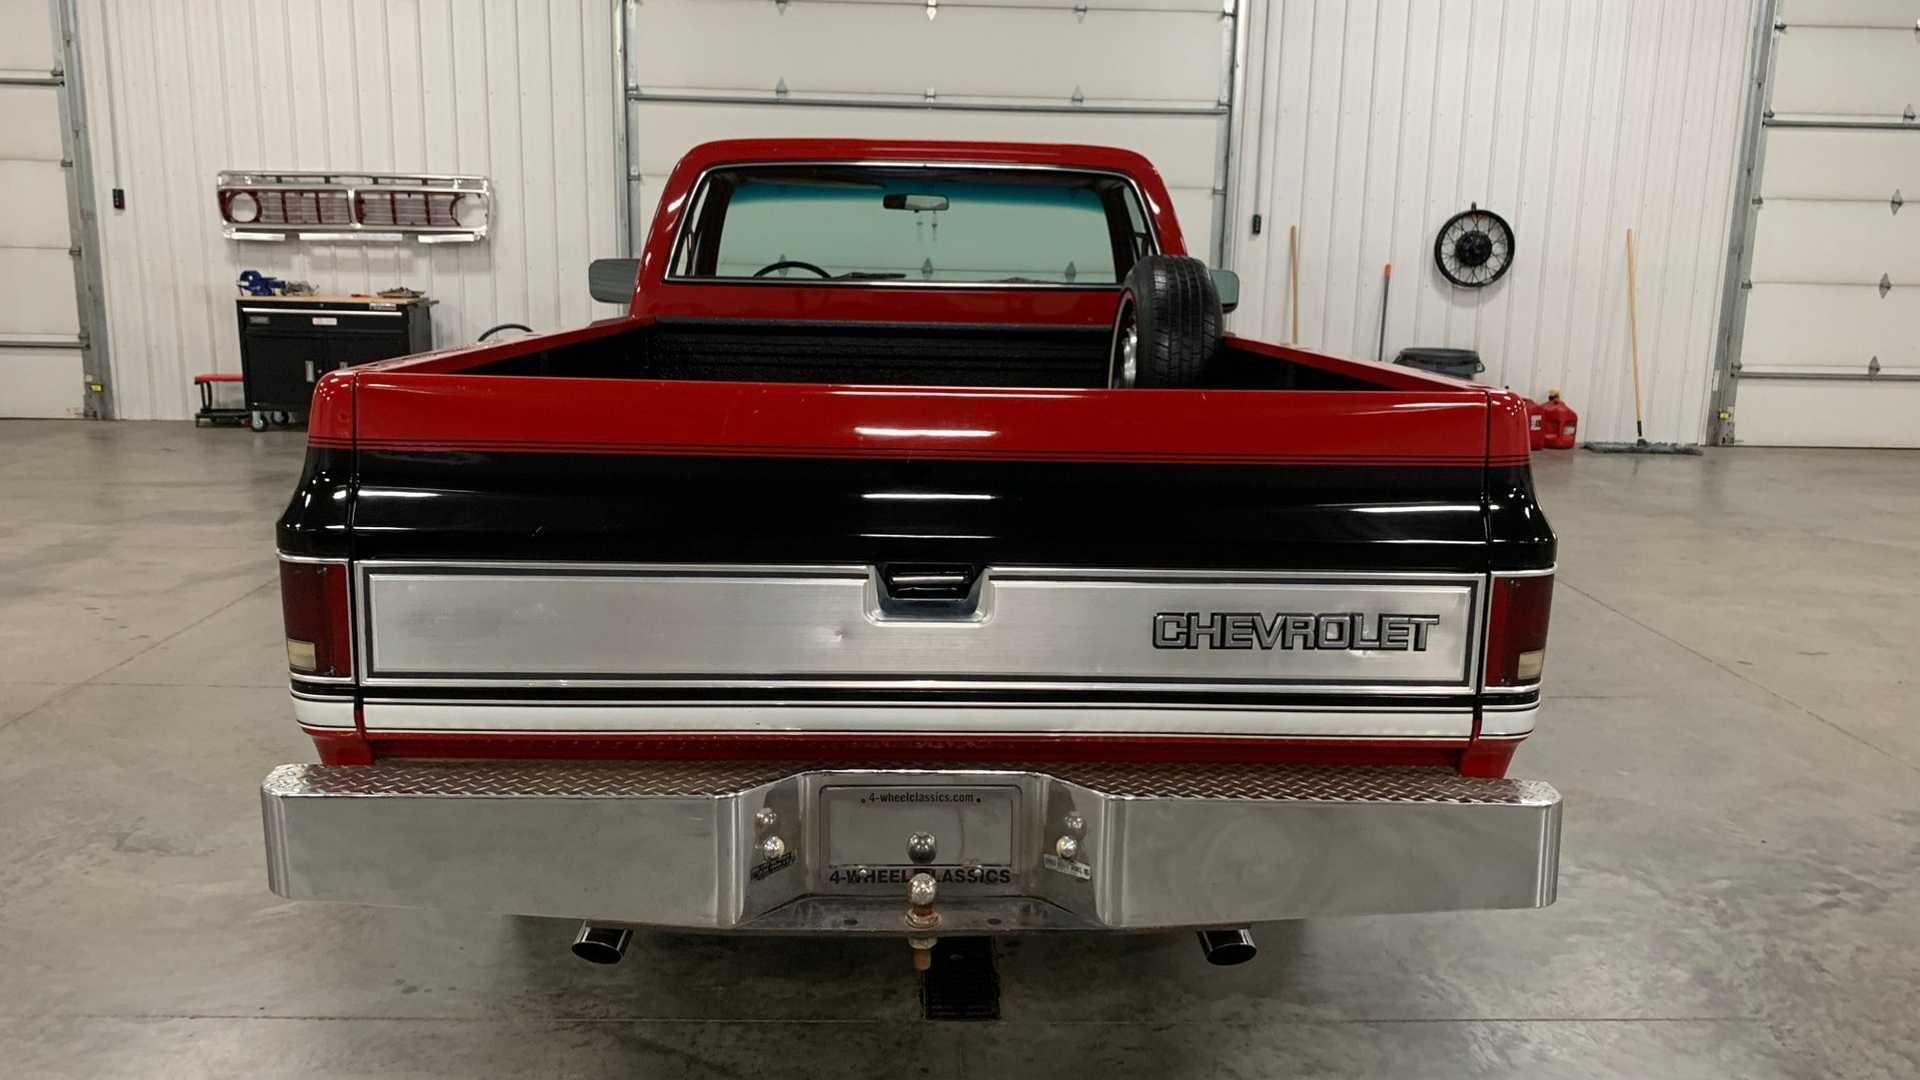 1983 Chevy Silverado >> 1983 Chevrolet C10 Square-Body Is A Southern Belle | Motorious